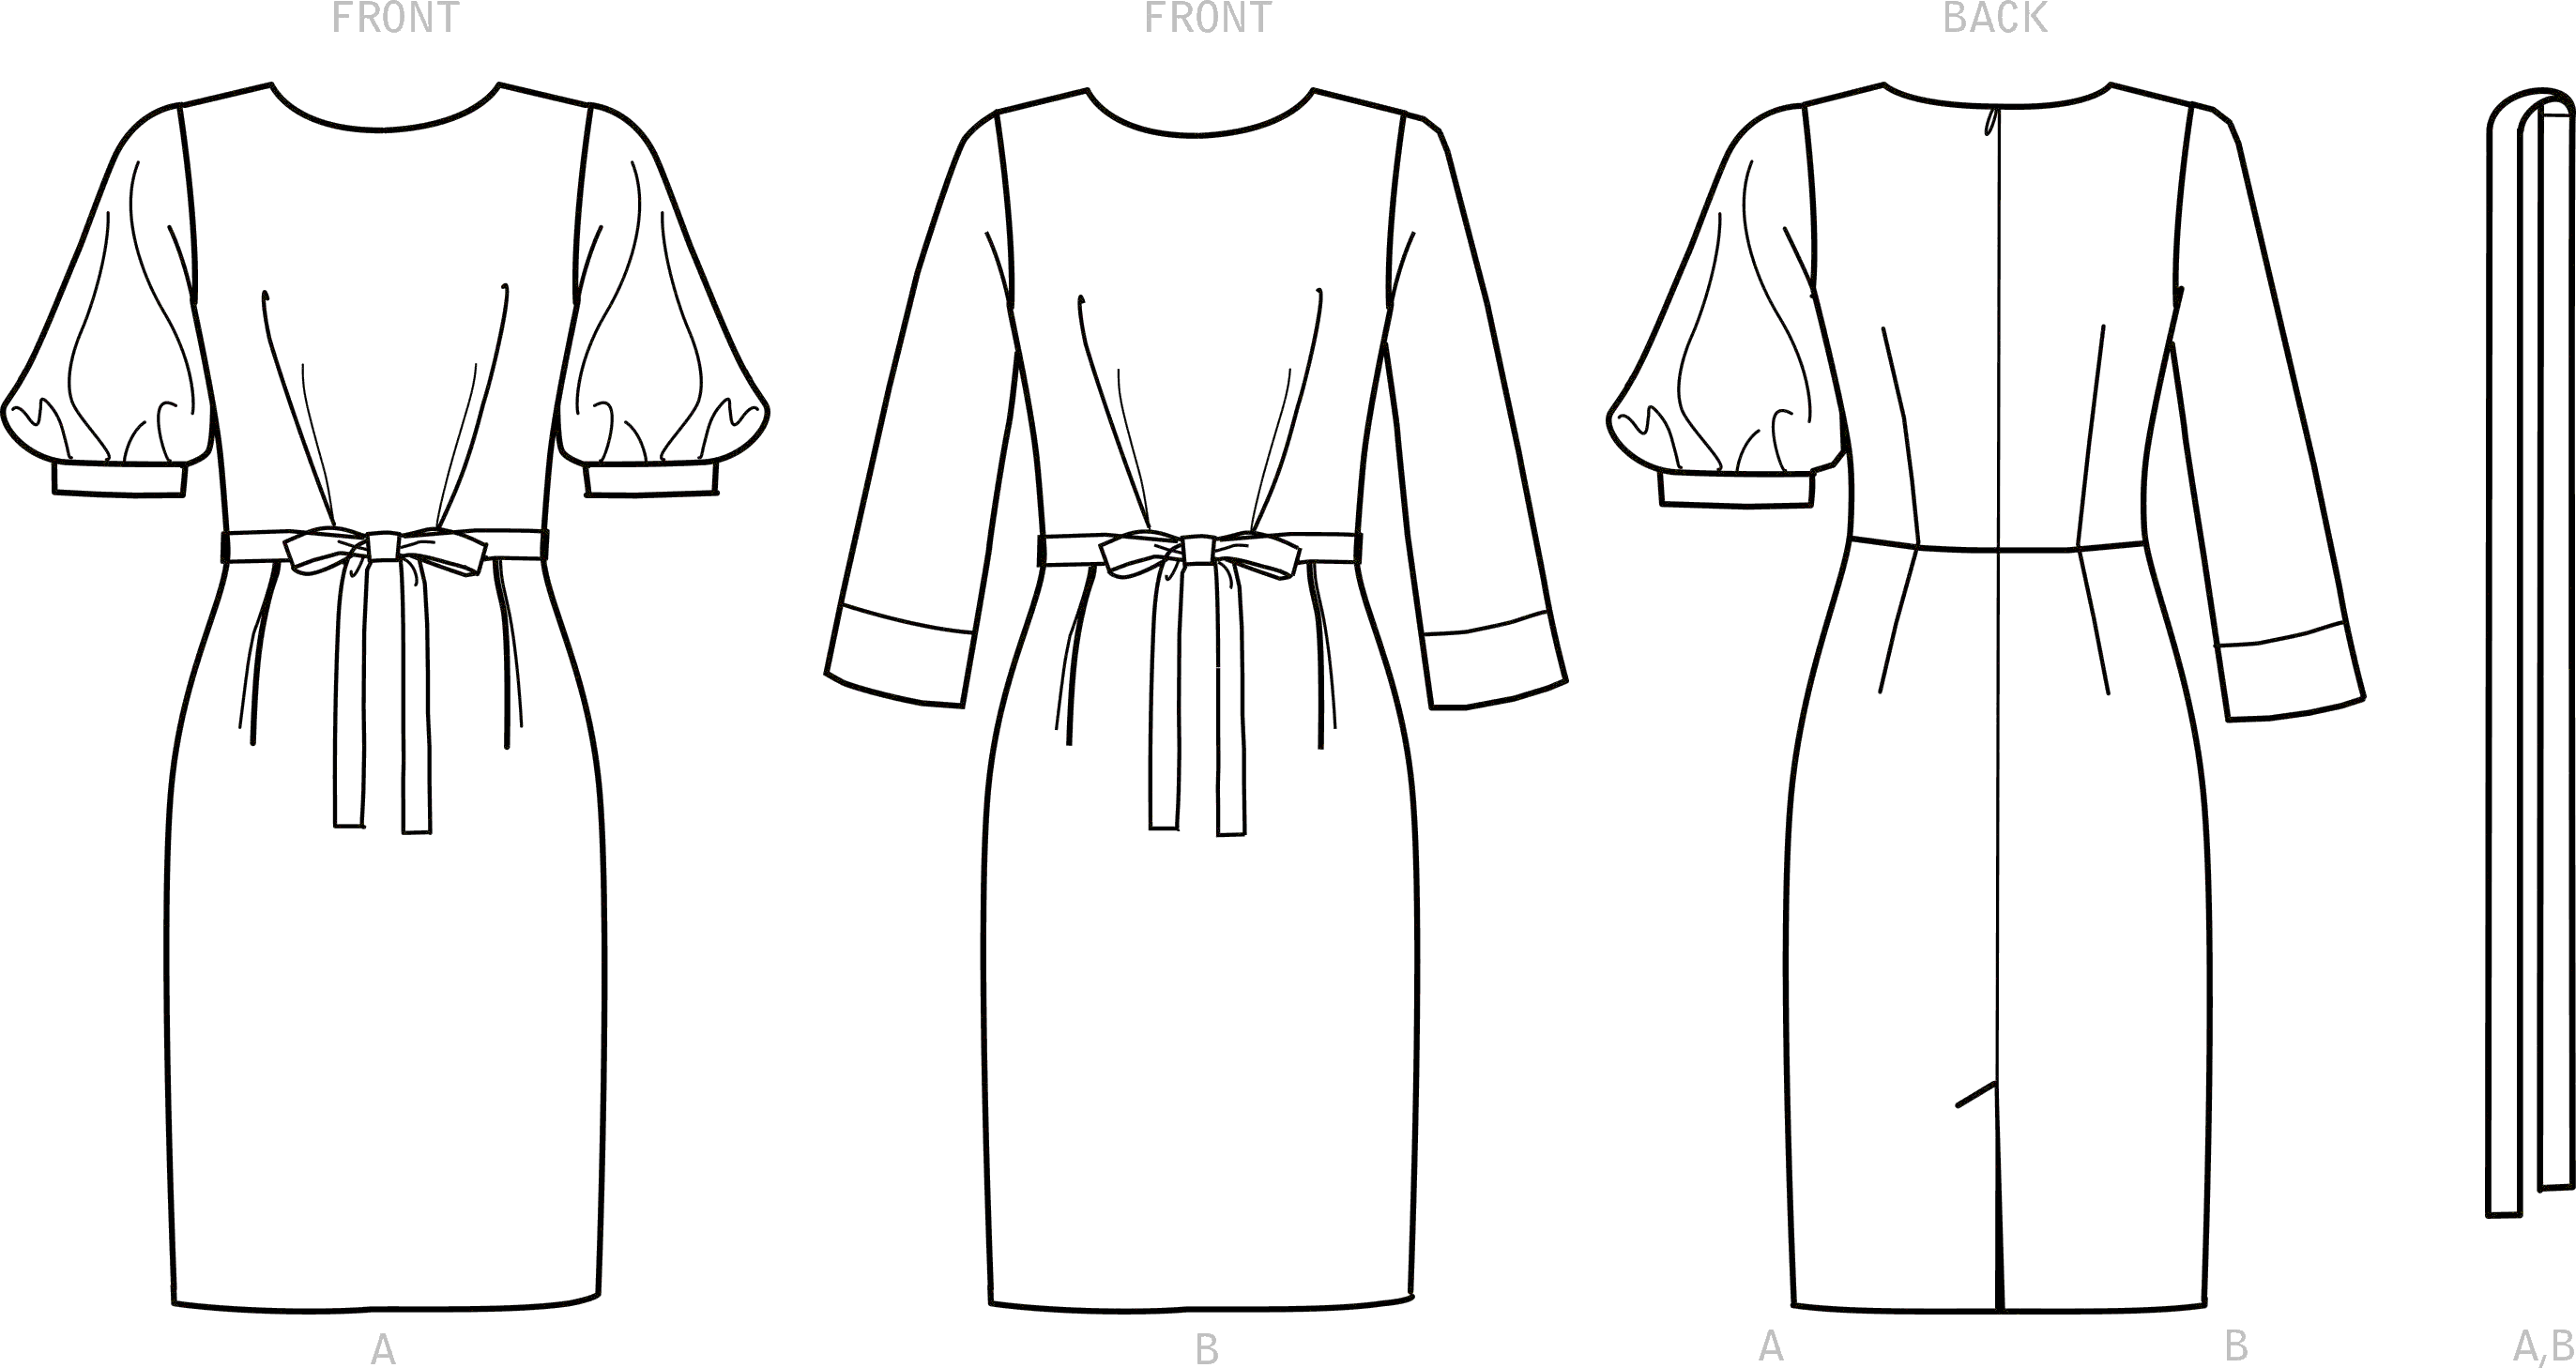 New Look Sewing Pattern N6679 Misses Knee Length Dress With Sleeve Variations 6679 Line Art From Patternsandplains.com